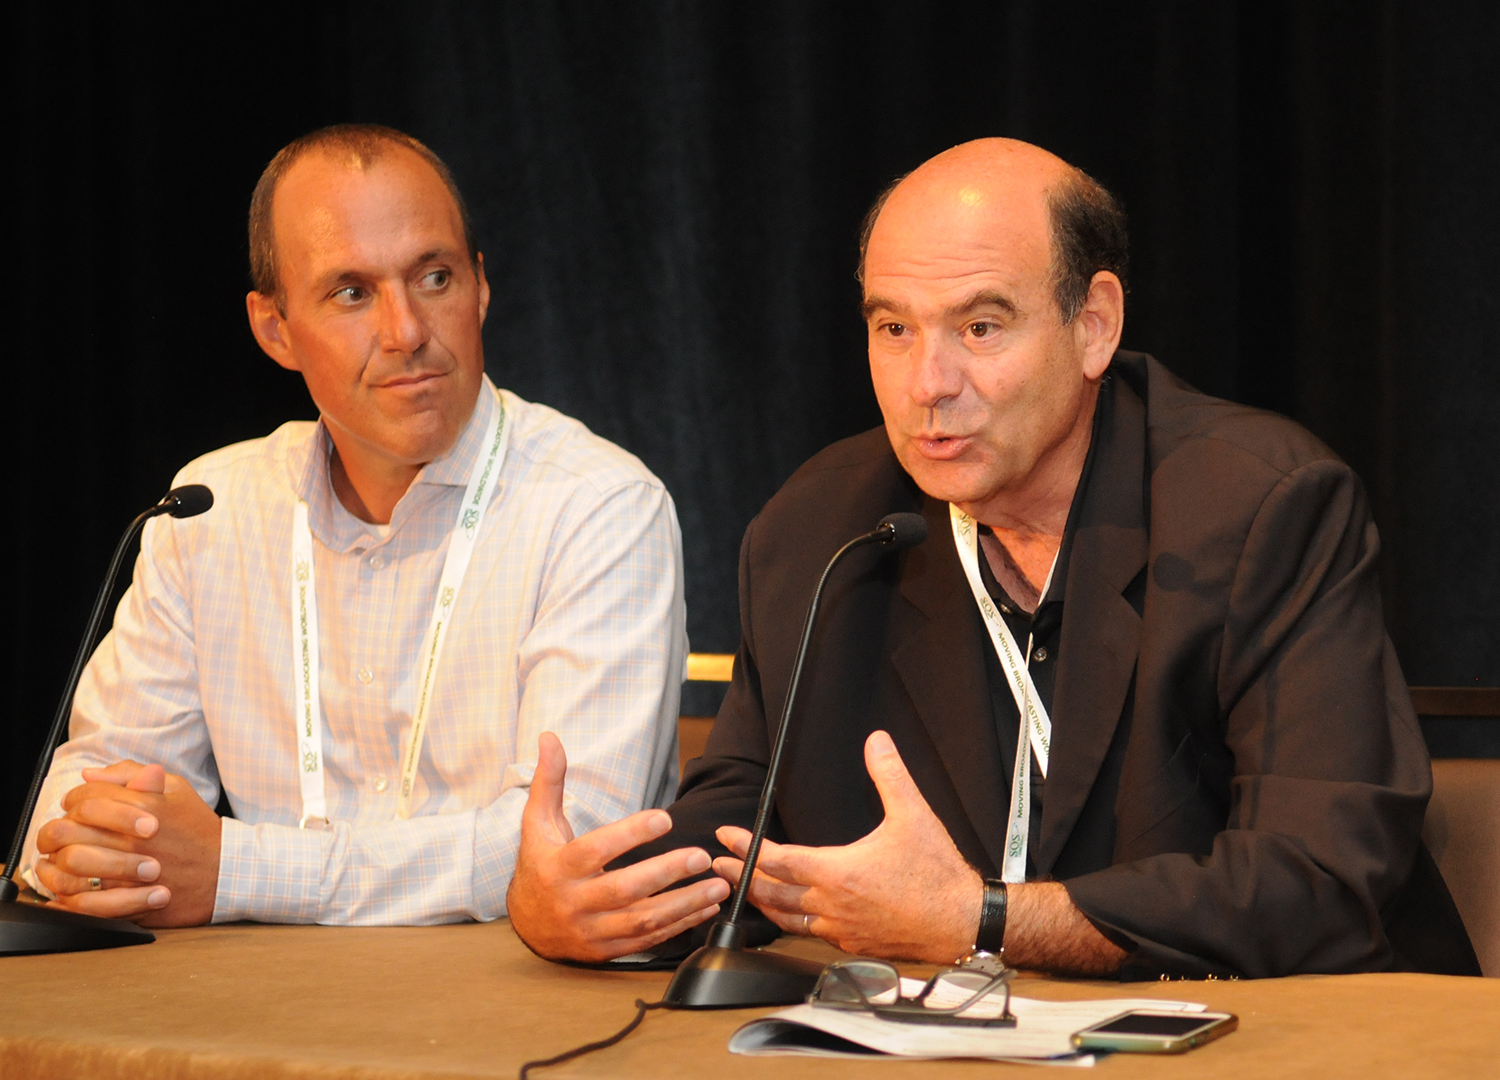 From left: Brian Campanotti, Oracle, Global Director of Business Development and Jeff Greenwald, HGST, Senior Director, Market Development